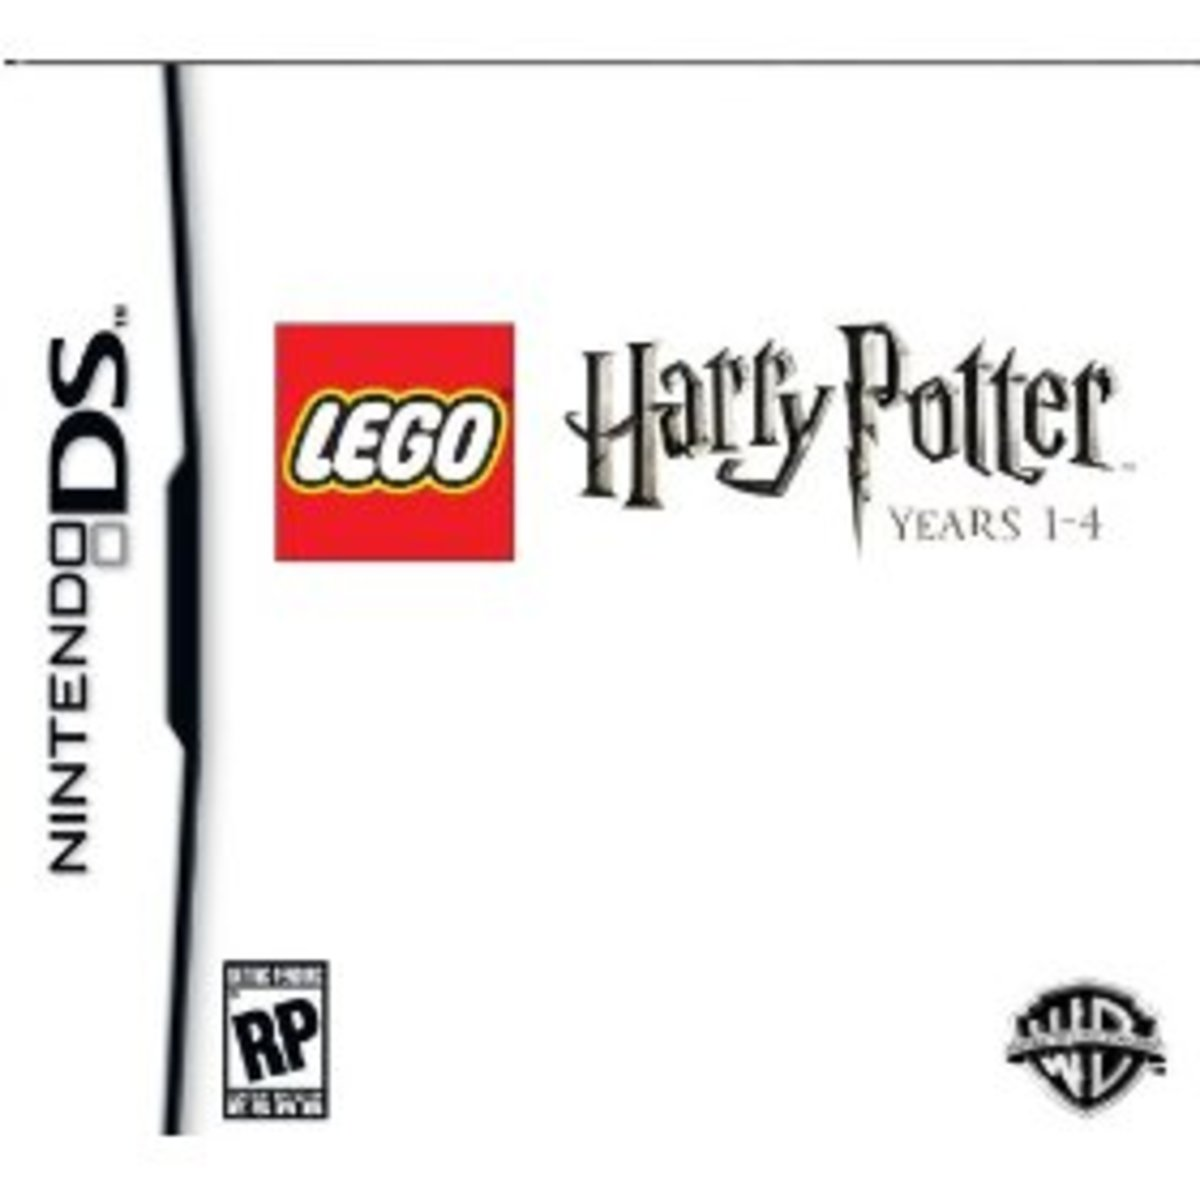 Harry Potter Top Childrens DSi Game!